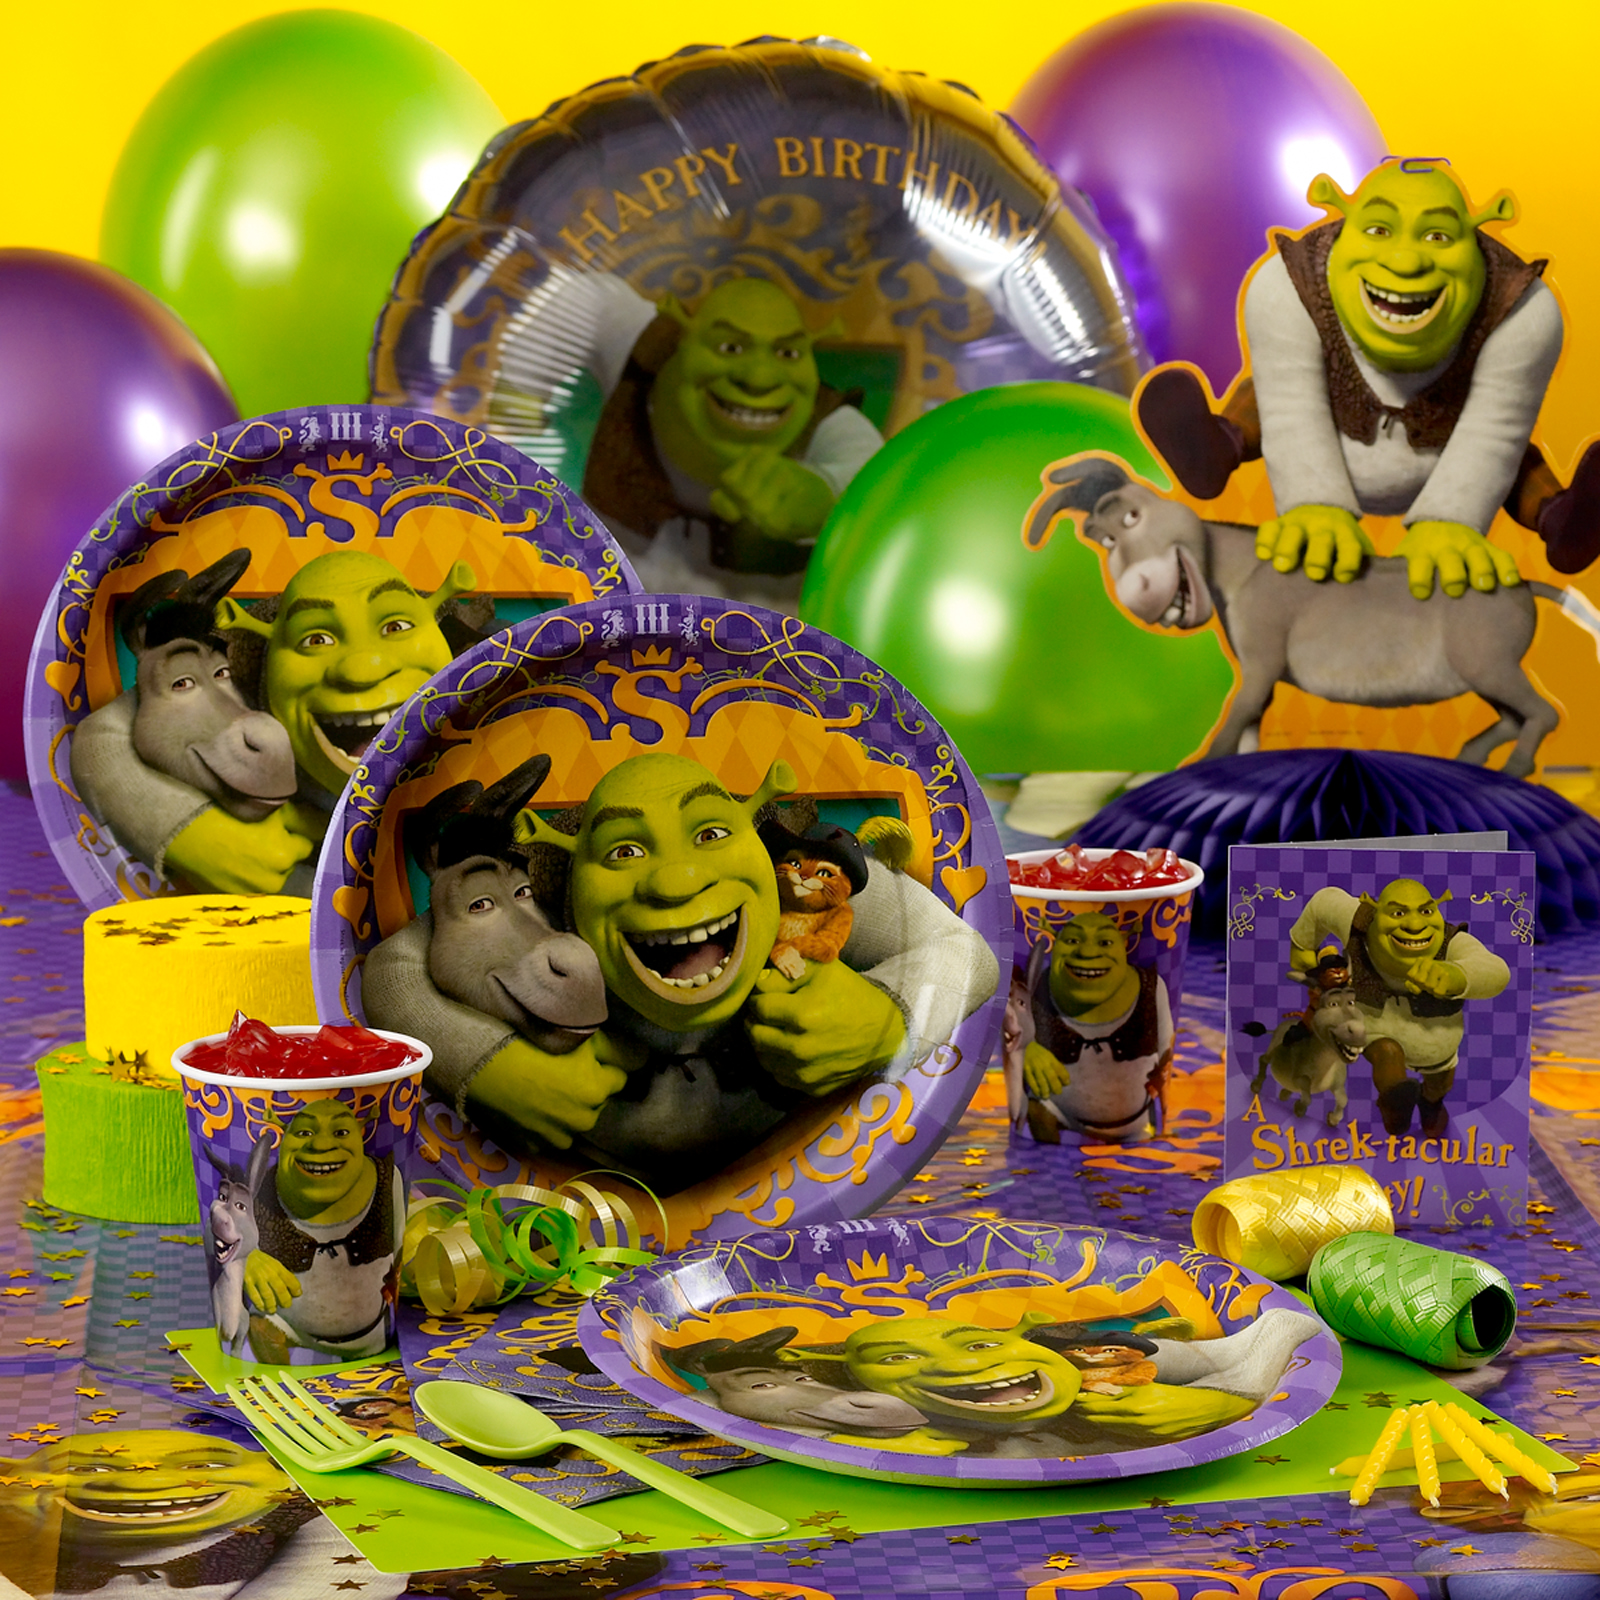 shrek party supplies - calepinhe36's soup